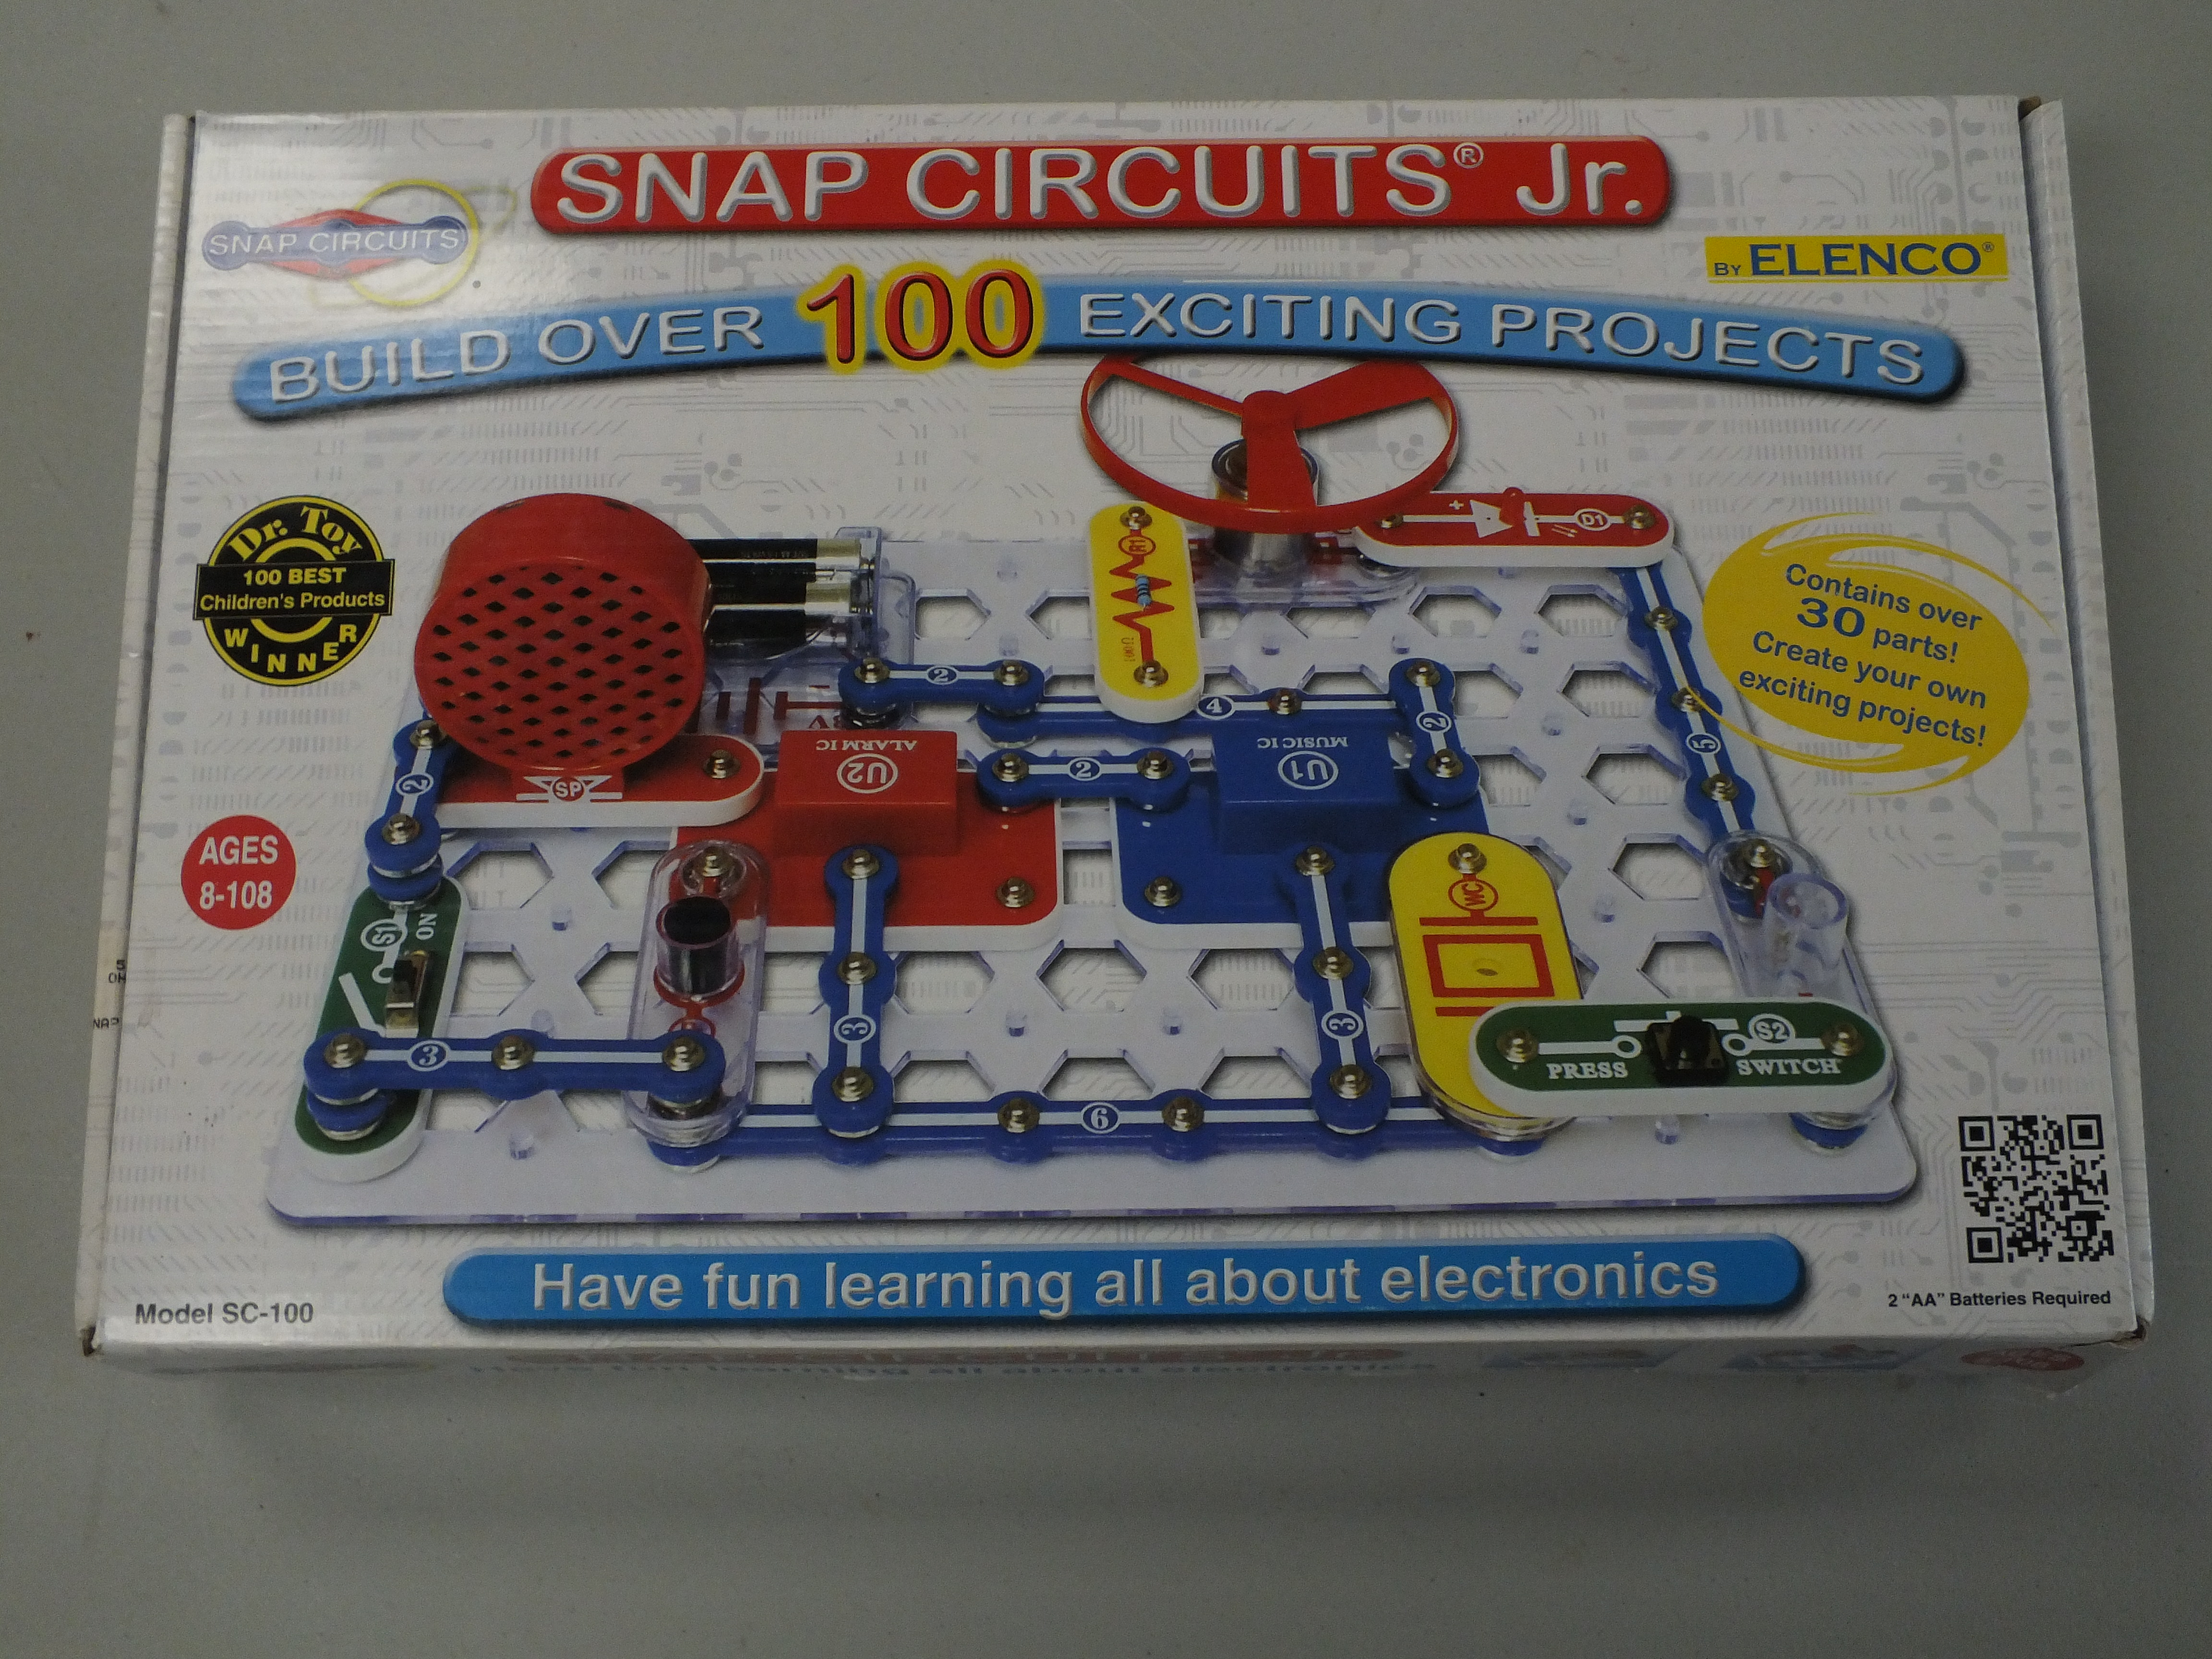 Circulating Steam Kits Mentor Public Library Fun Circuit To Build Description The Next Step Up From Snap Beginner This Set Has Even More Parts And Can Create Over 100 Different Projects